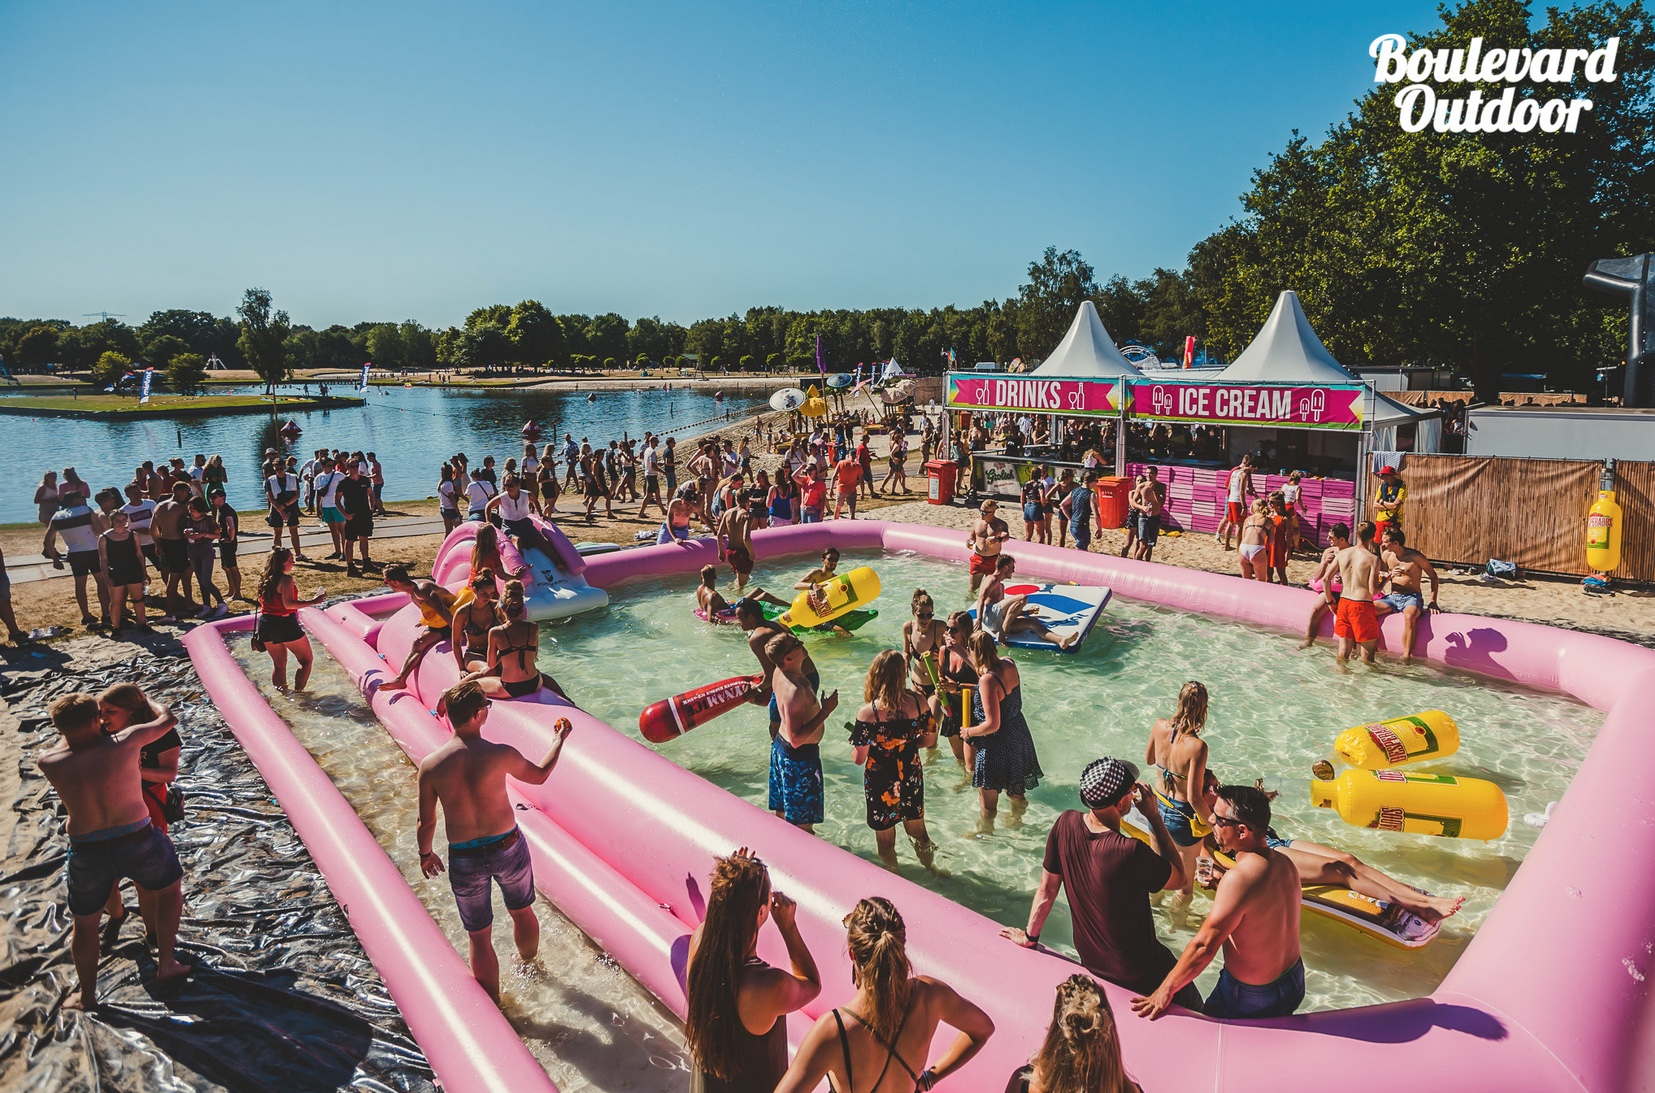 poolparty outdoor boulevard 12x8.jpeg